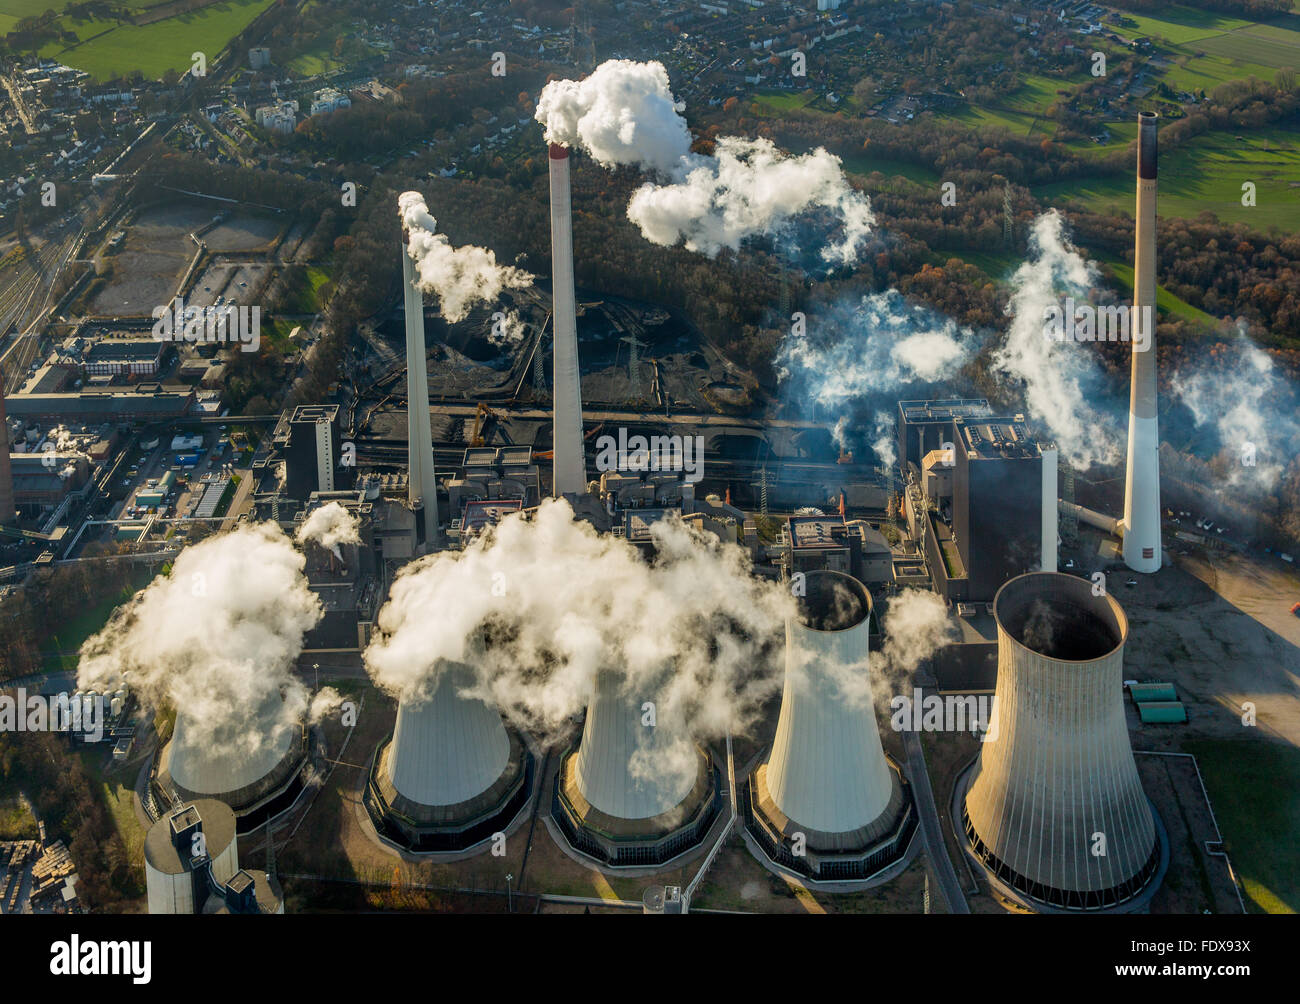 Coal power plant Scholven, E.ON Kraftwerke, cooling towers, chimneys, smoke, Gelsenkirchen, Ruhr district - Stock Image